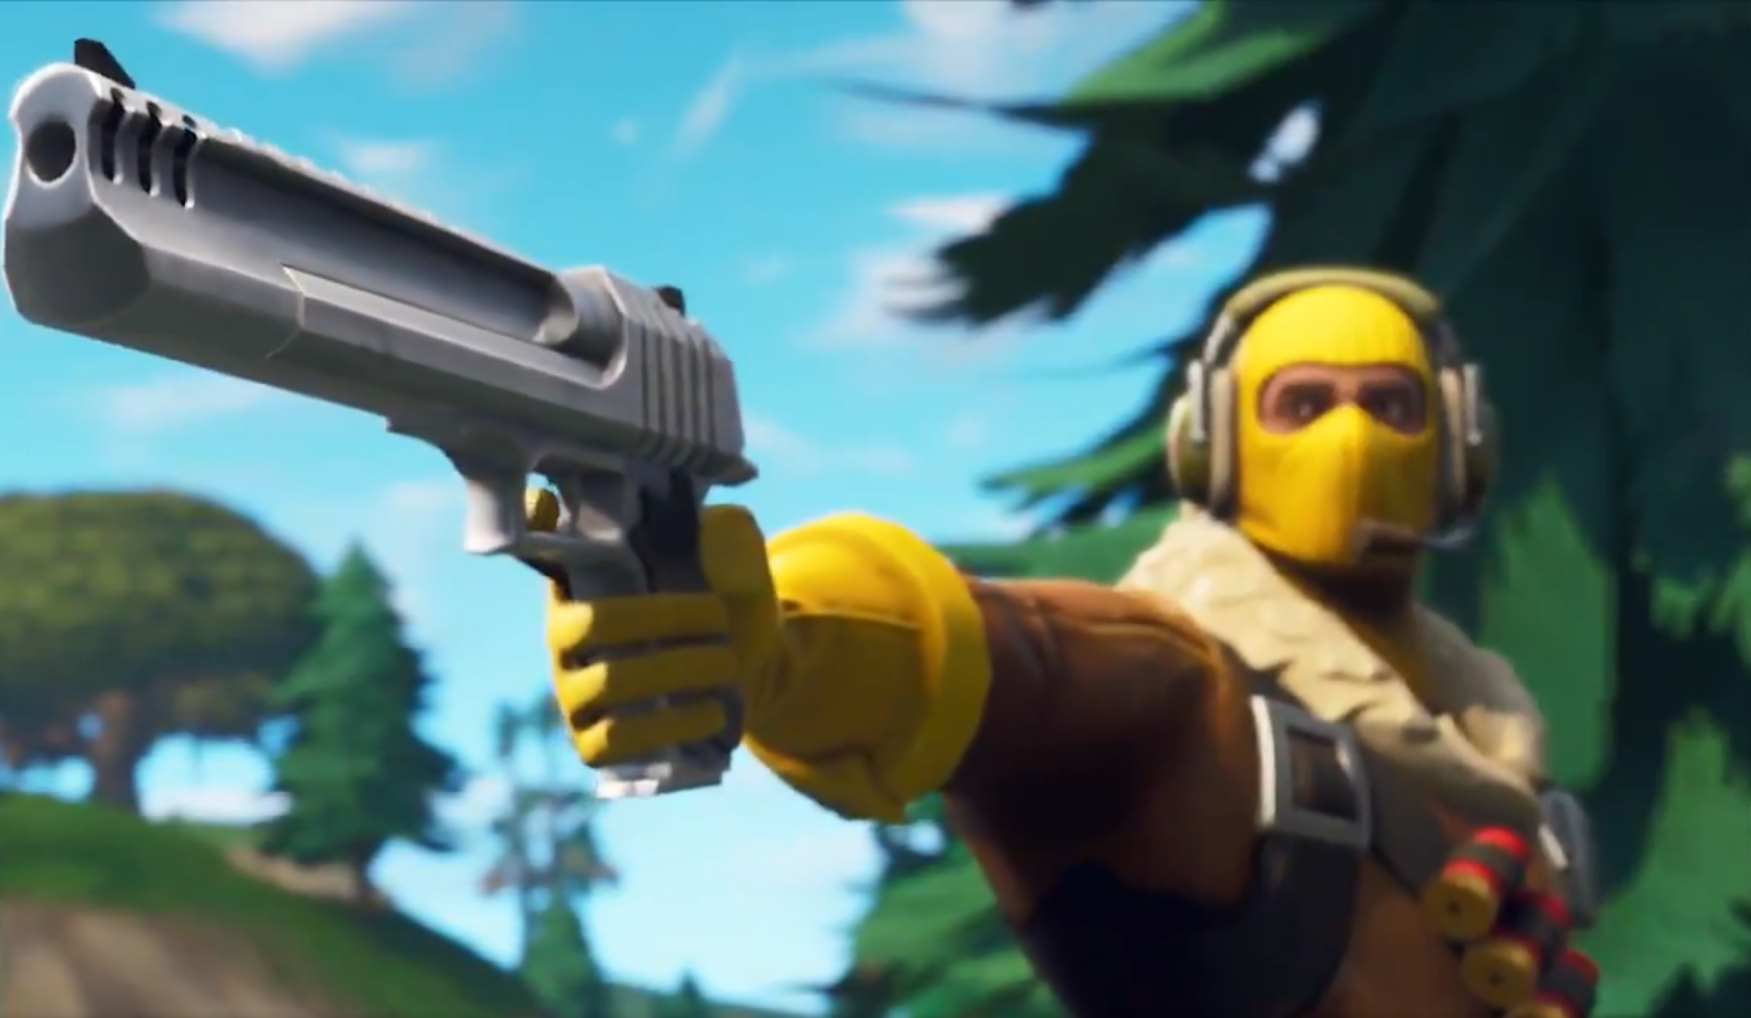 New weapon for Fortnite Battle Royale: wicking gun